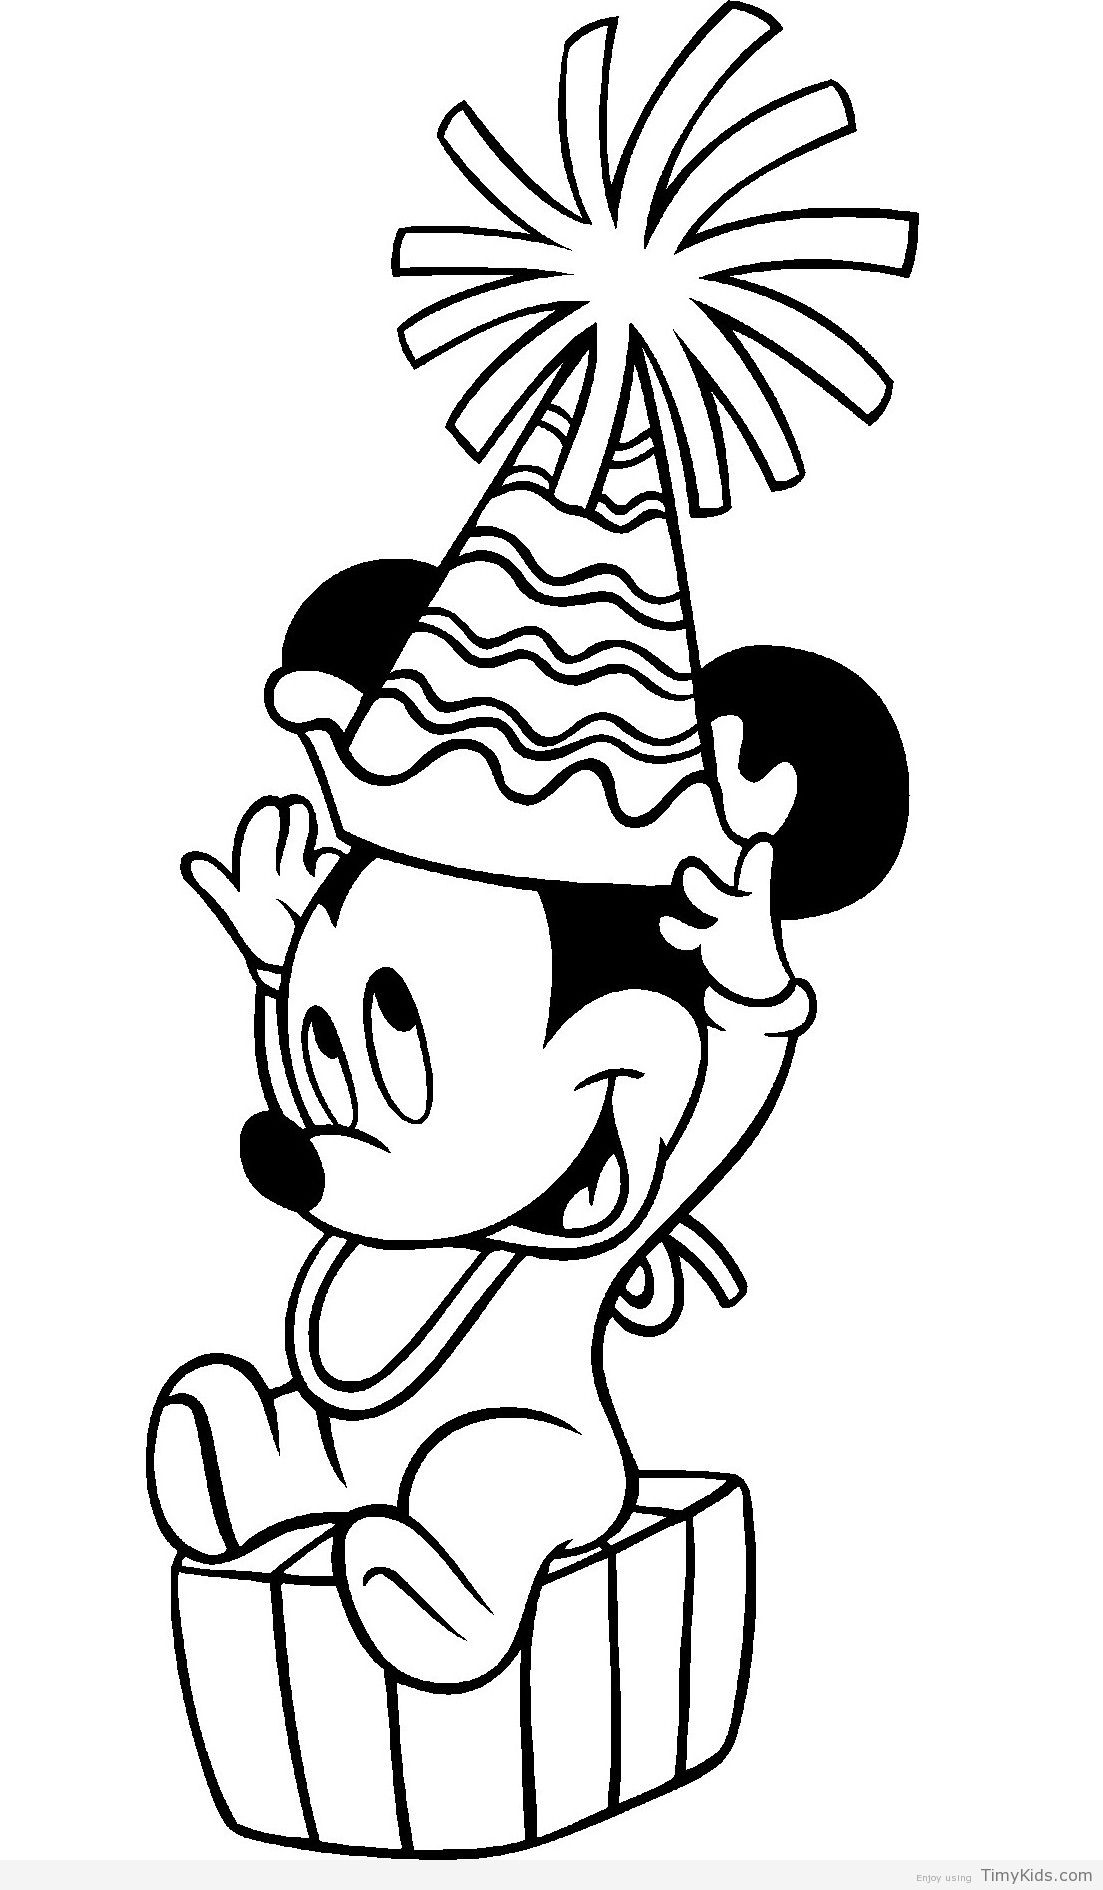 Ausmalbilder Zum Ausdrucken Micky Maus : Http Timykids Com Free Printable Mickey Mouse Coloring Pages Html